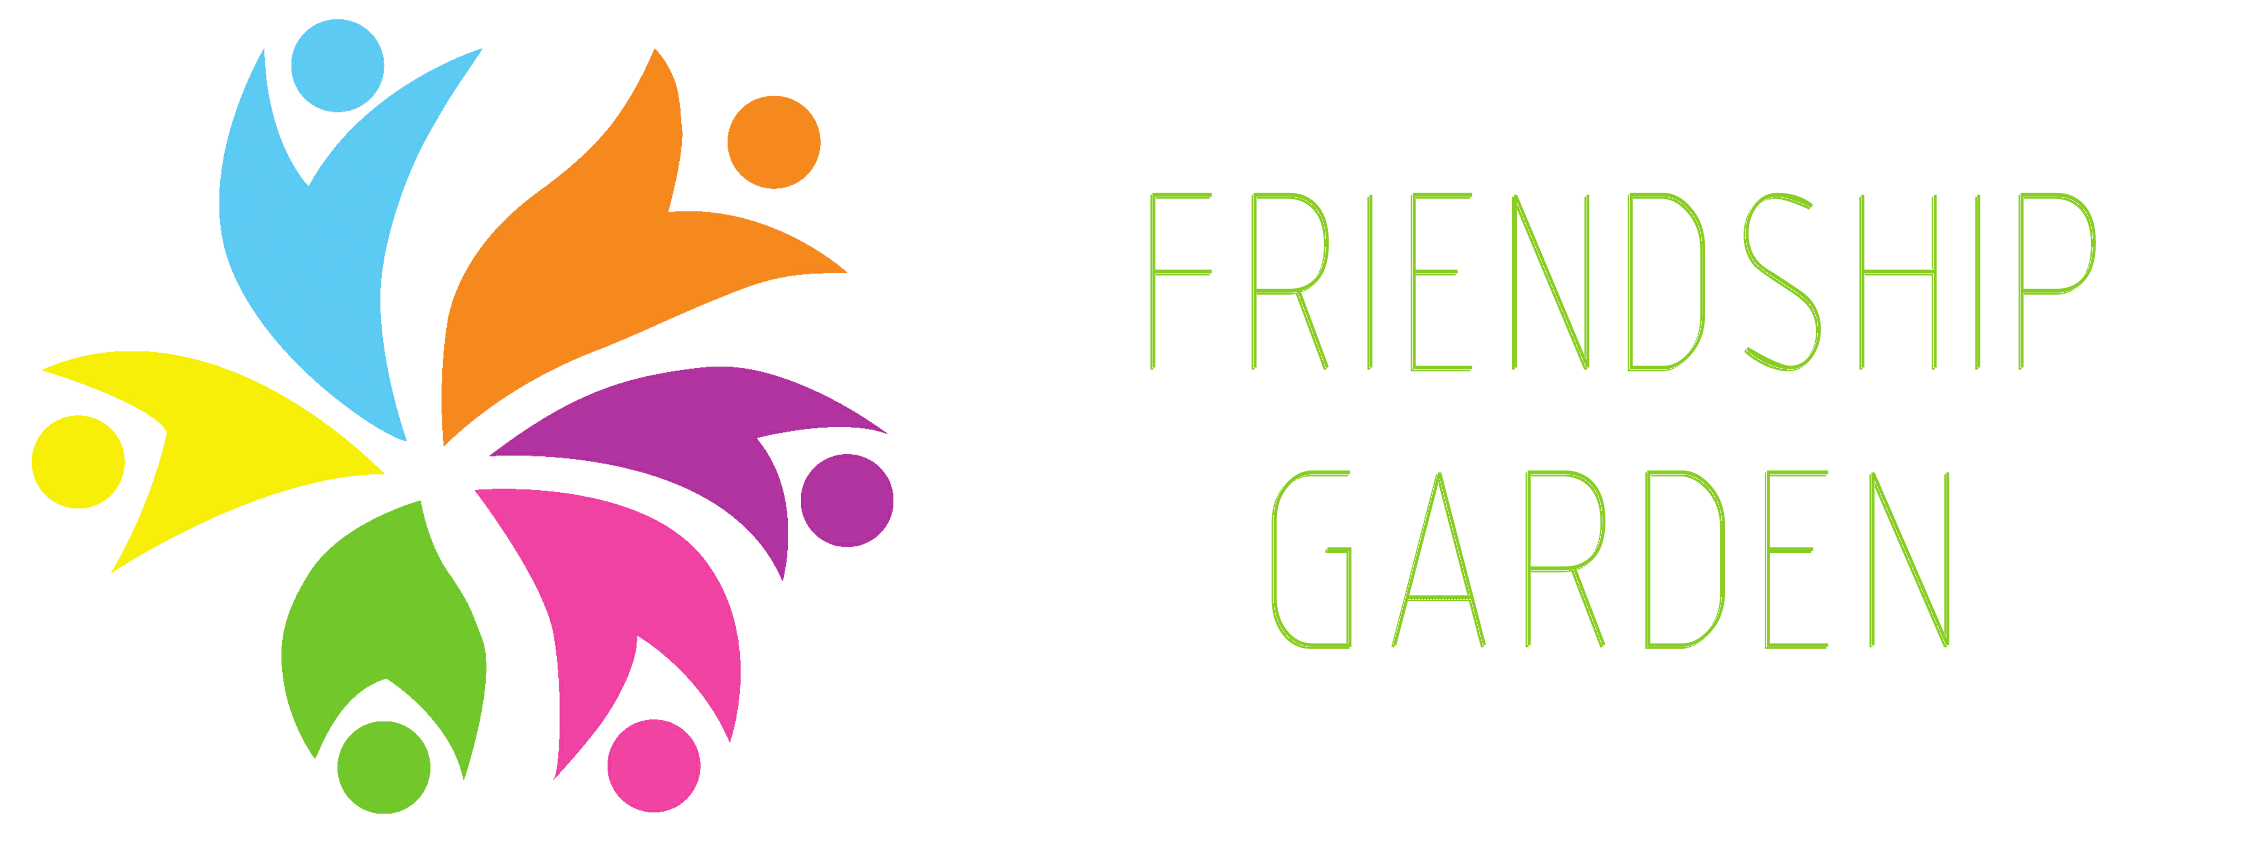 Friendship Garden